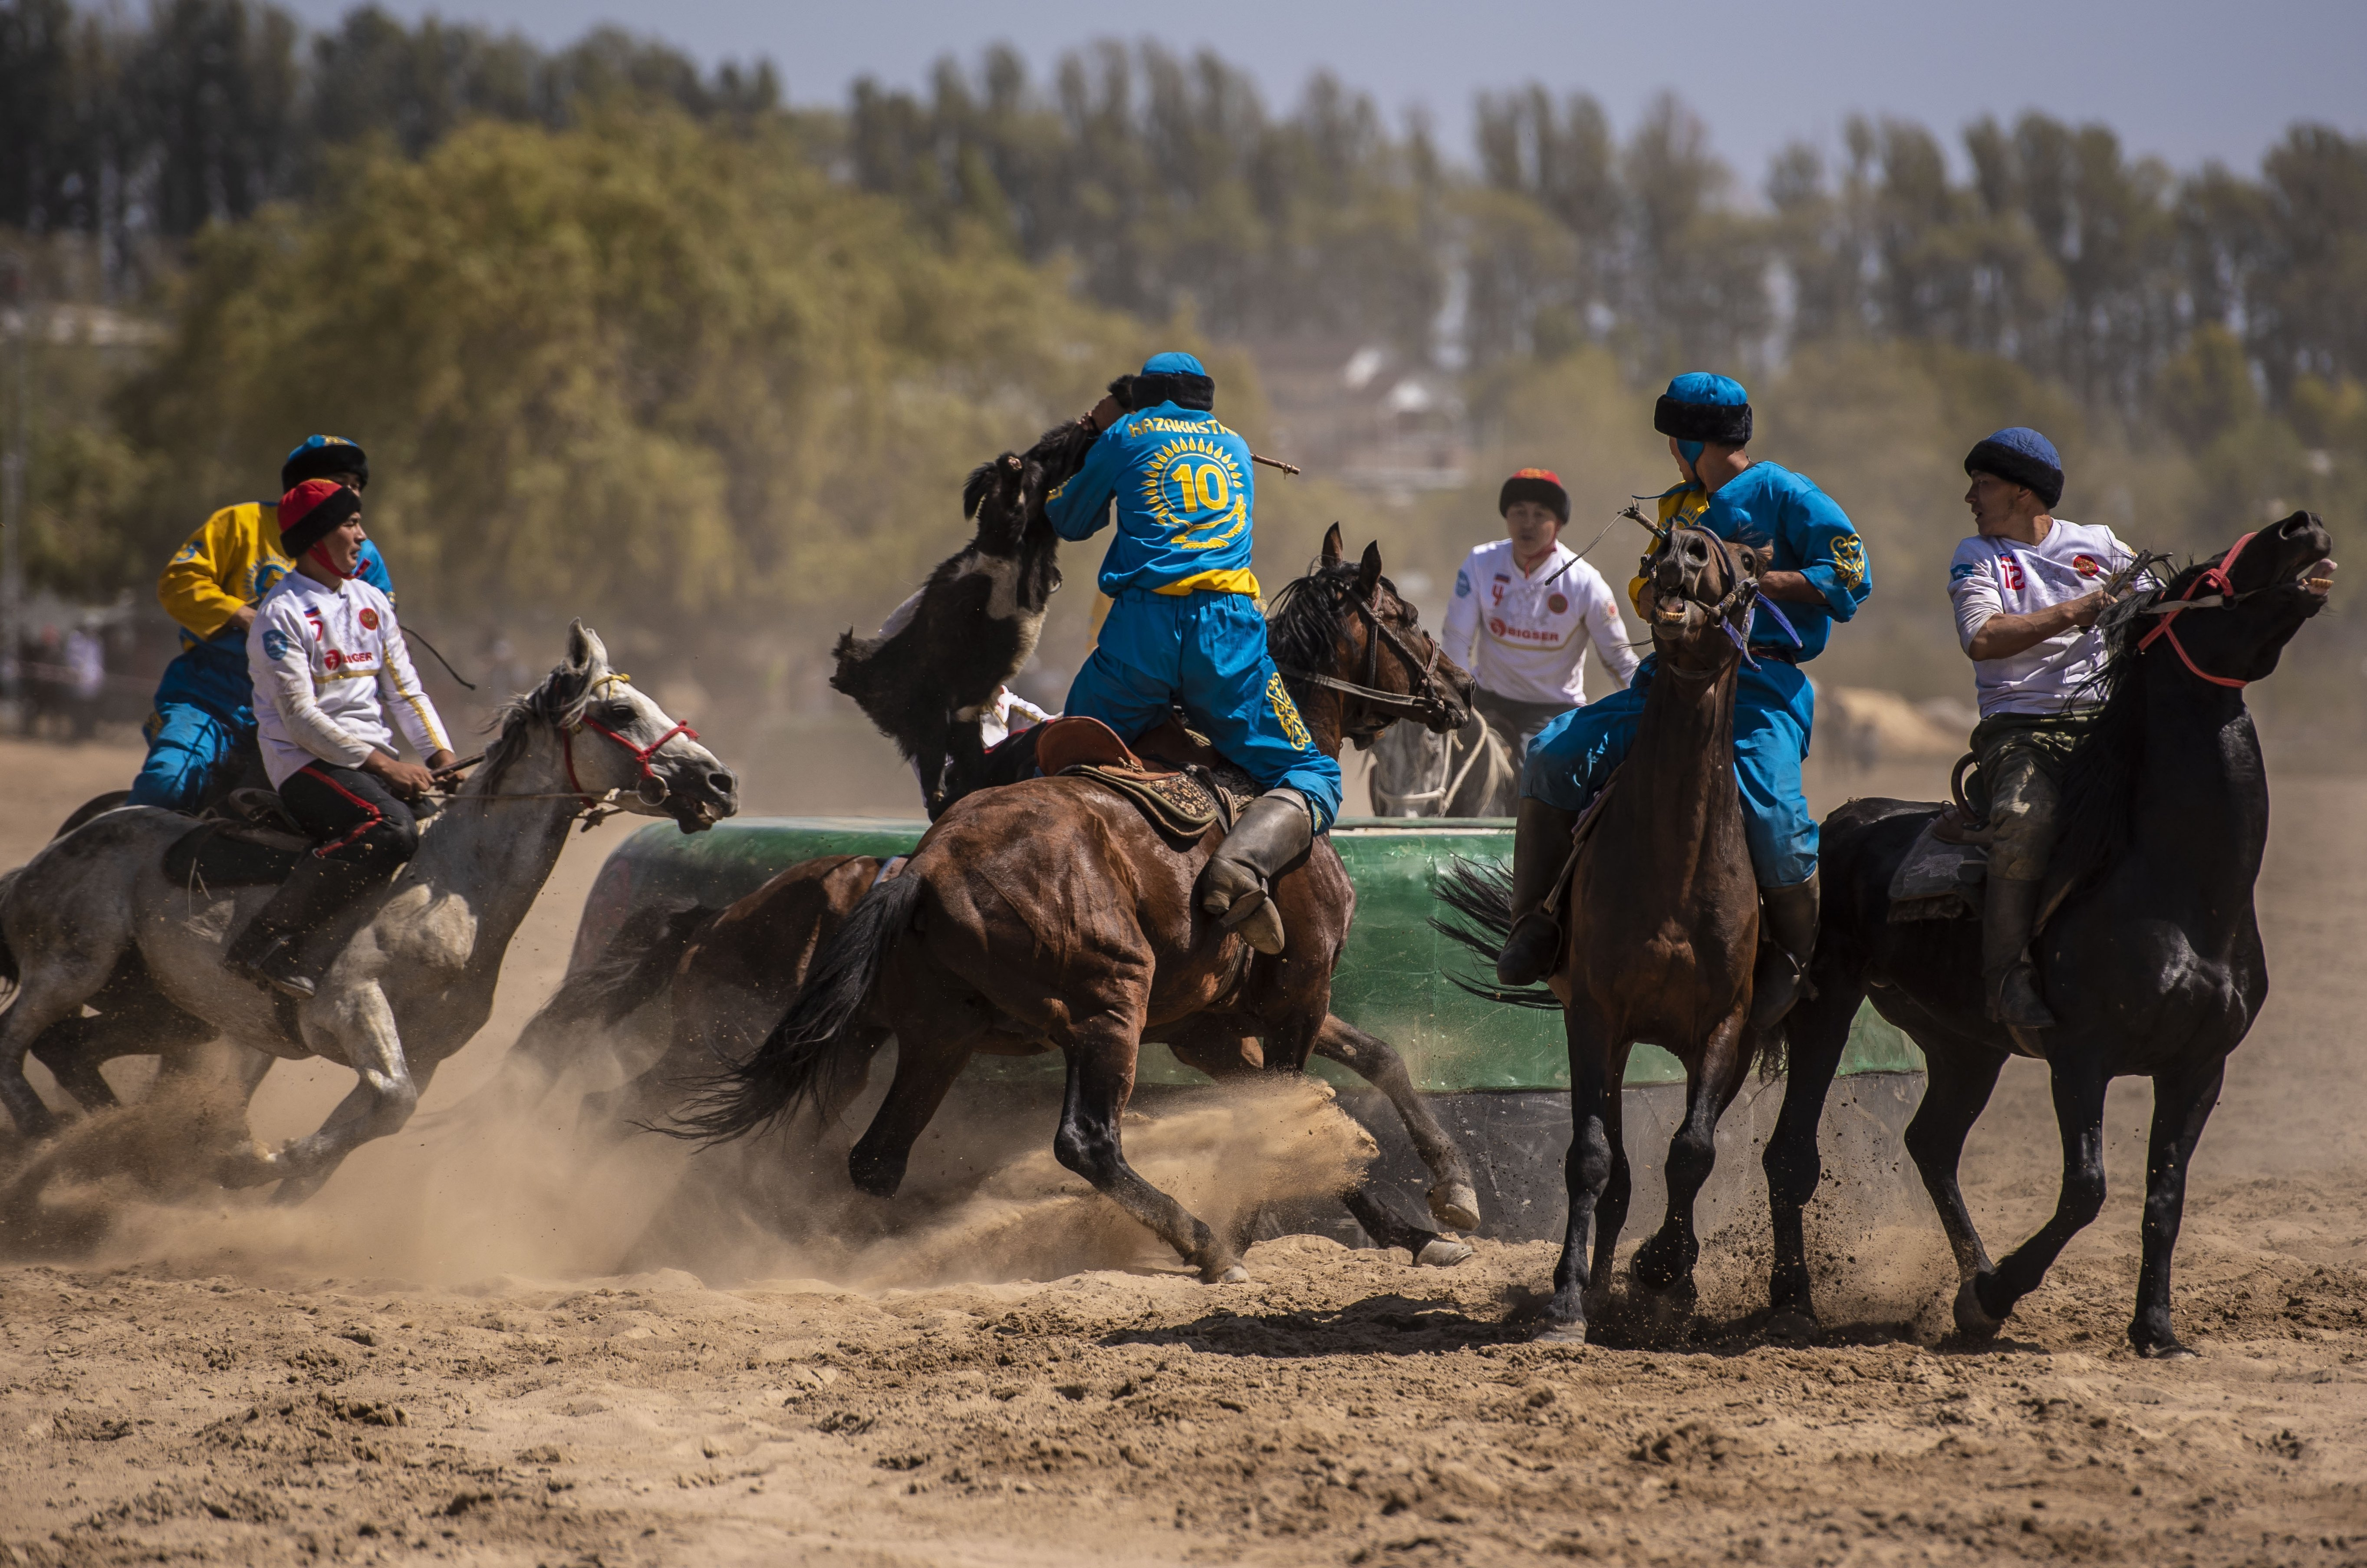 Un match de kok-boru durant les World Nomad Games 2018